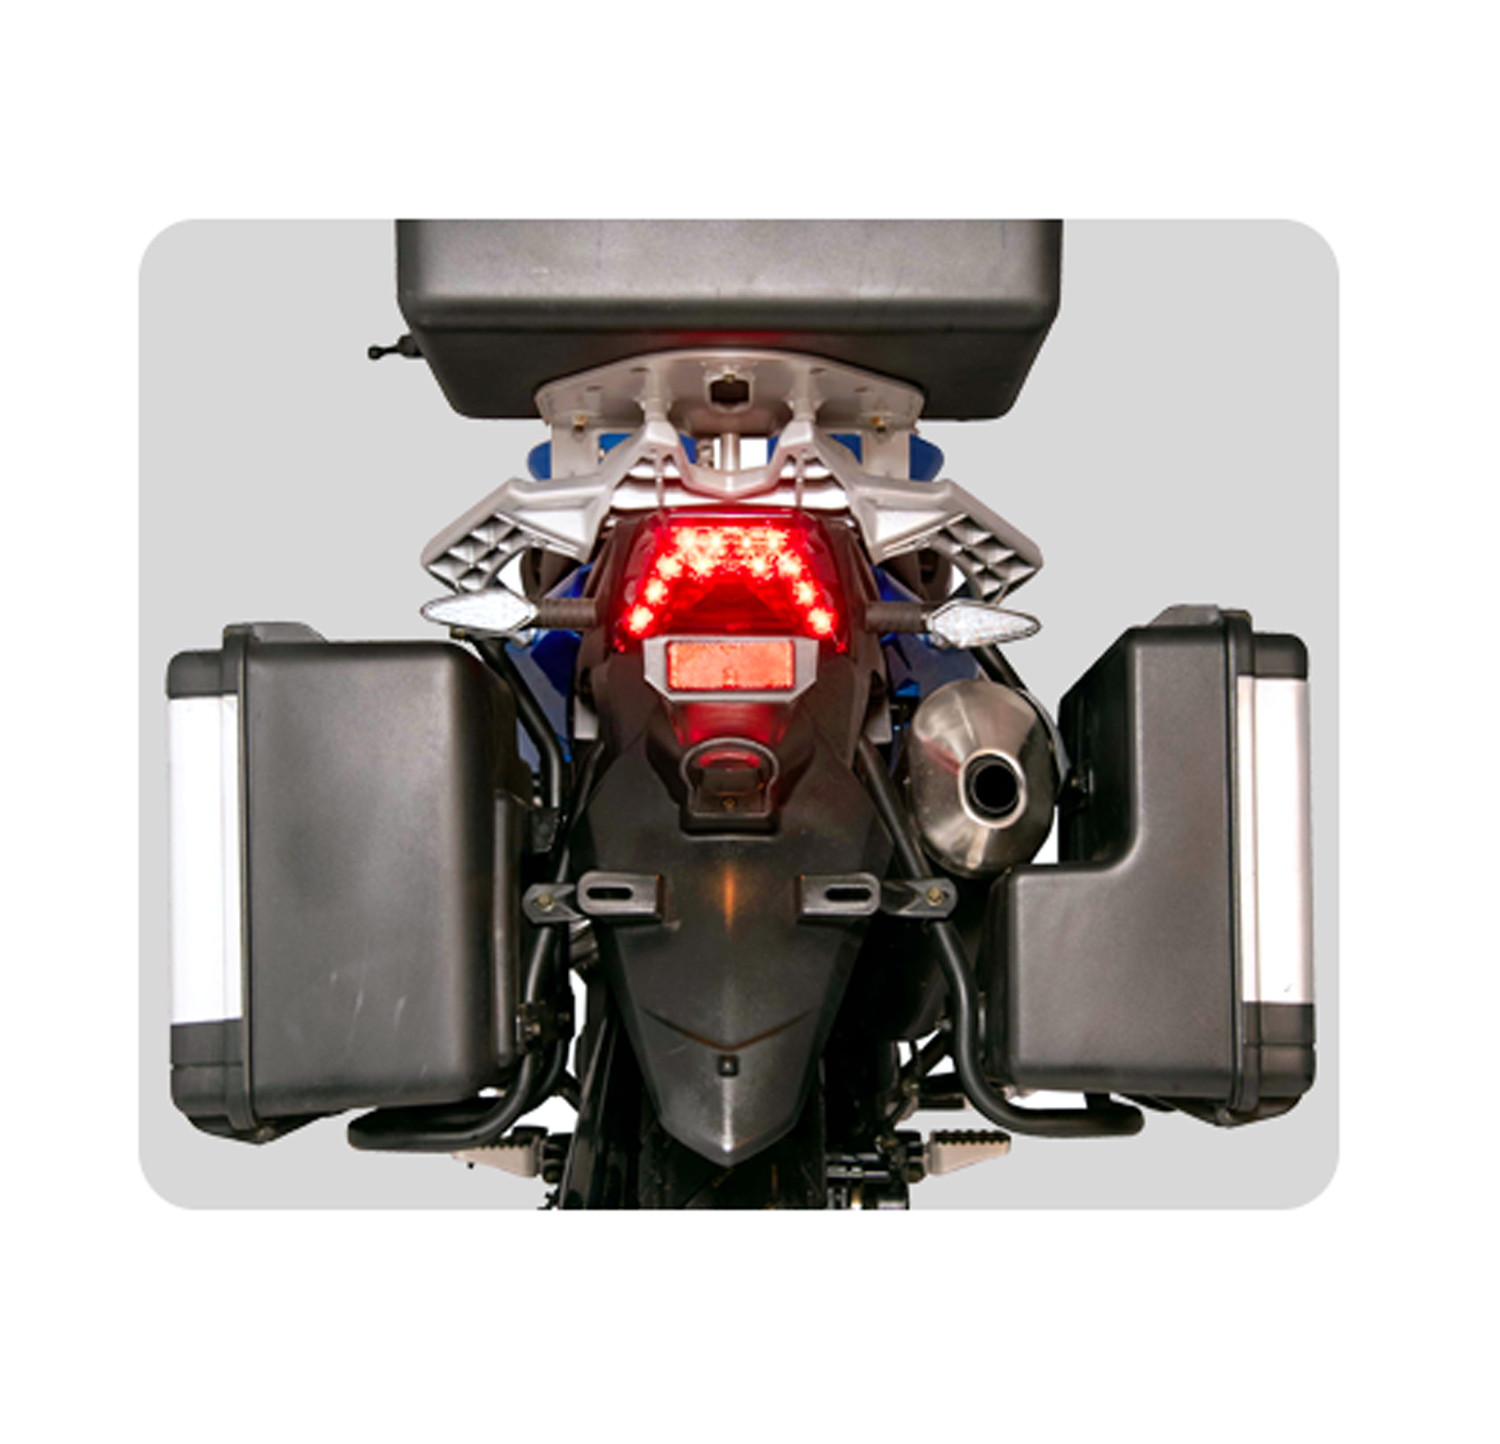 Brighter LED Tail Light with Reflector